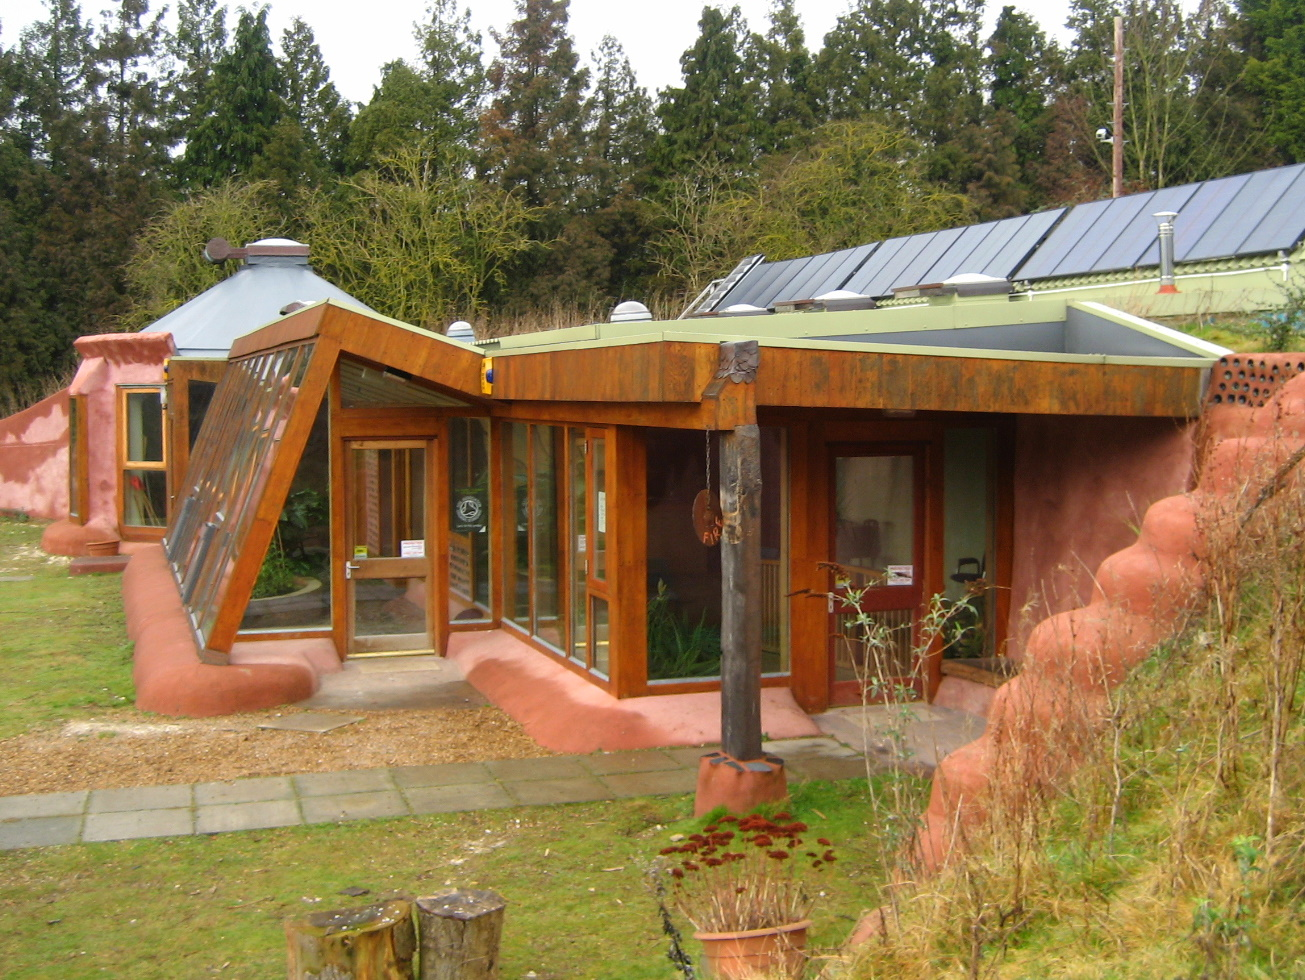 Building A House : Earthship wikidwelling fandom powered by wikia